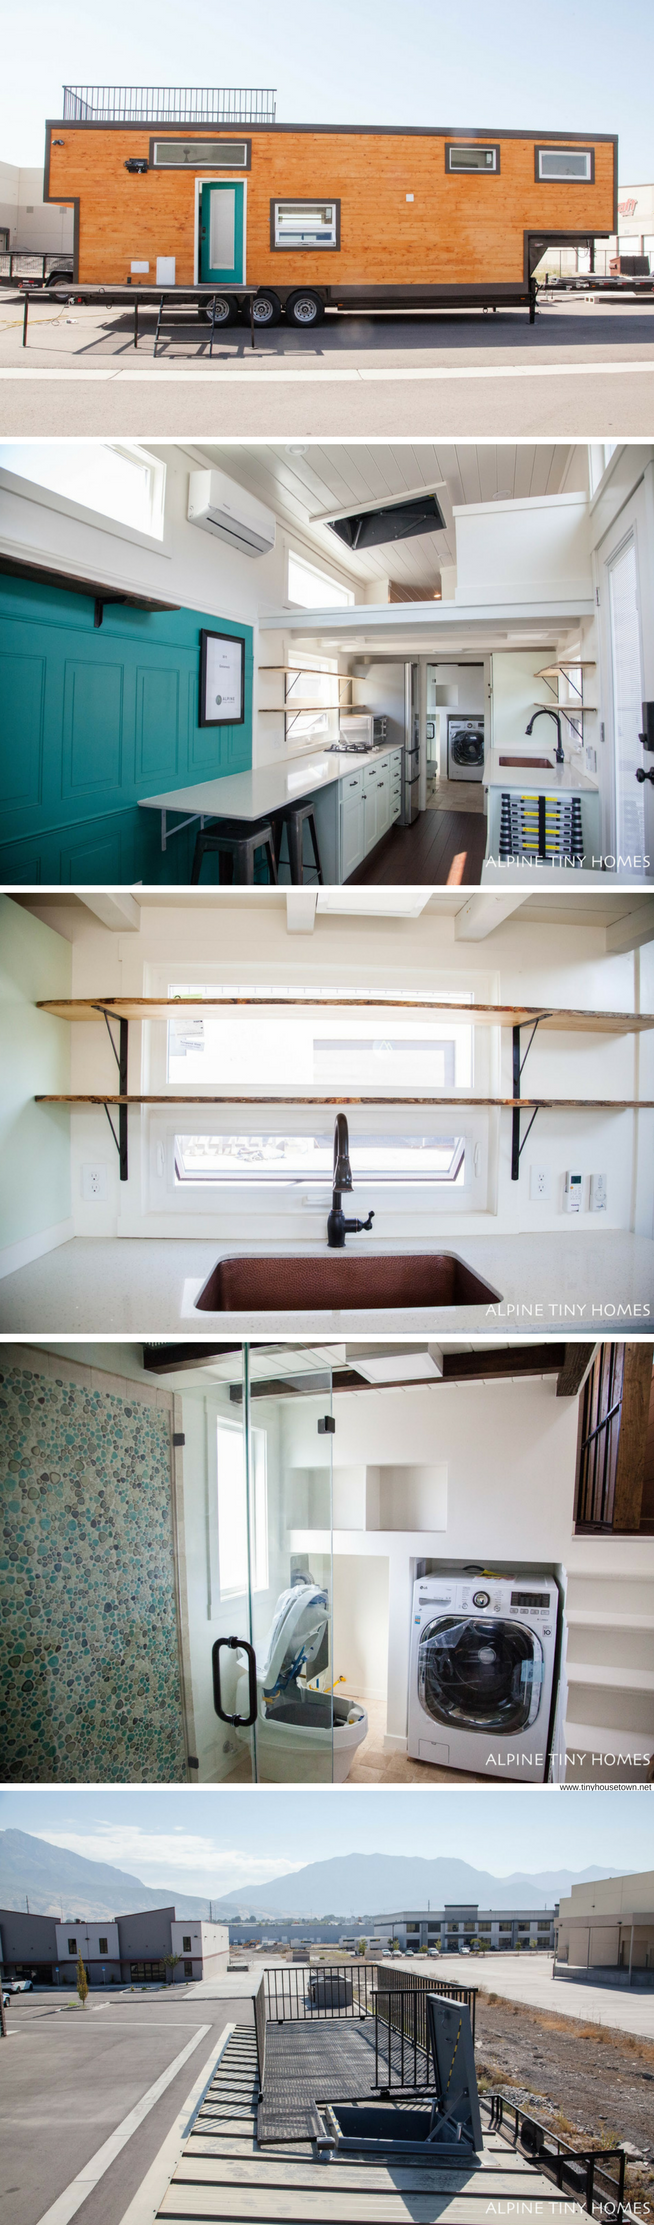 A brand new custom tiny house from Alpine Tiny Homes. Features a dog ...